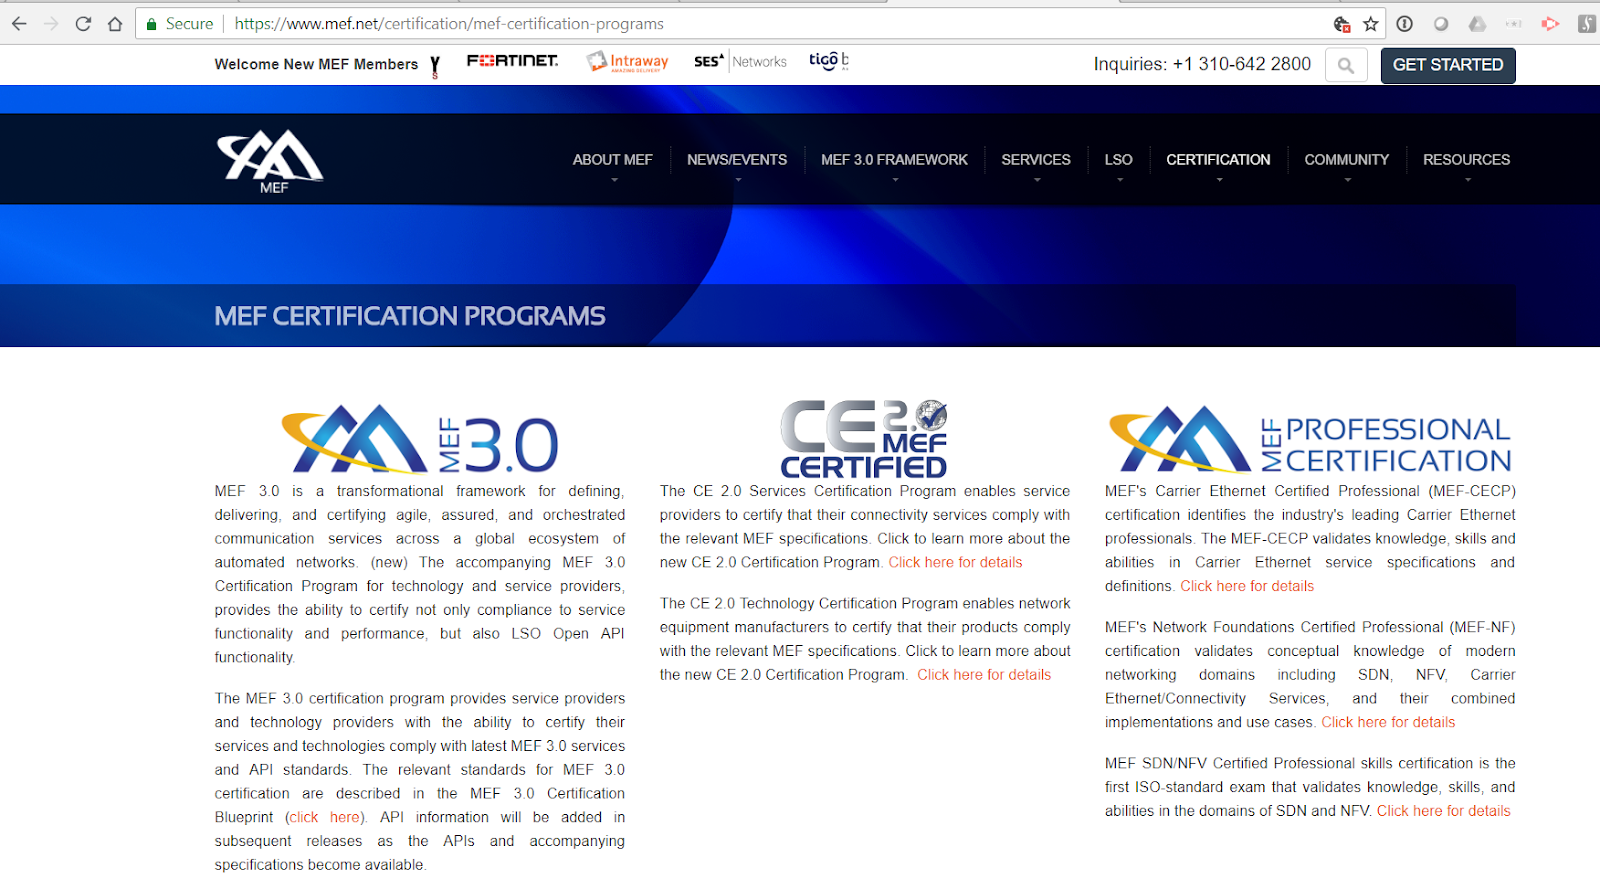 Mef offers sdnnfv professional certification converge network digest this is the first certification of its kind in the exploding field of virtualized networking said rick bauer certification director at mef malvernweather Choice Image